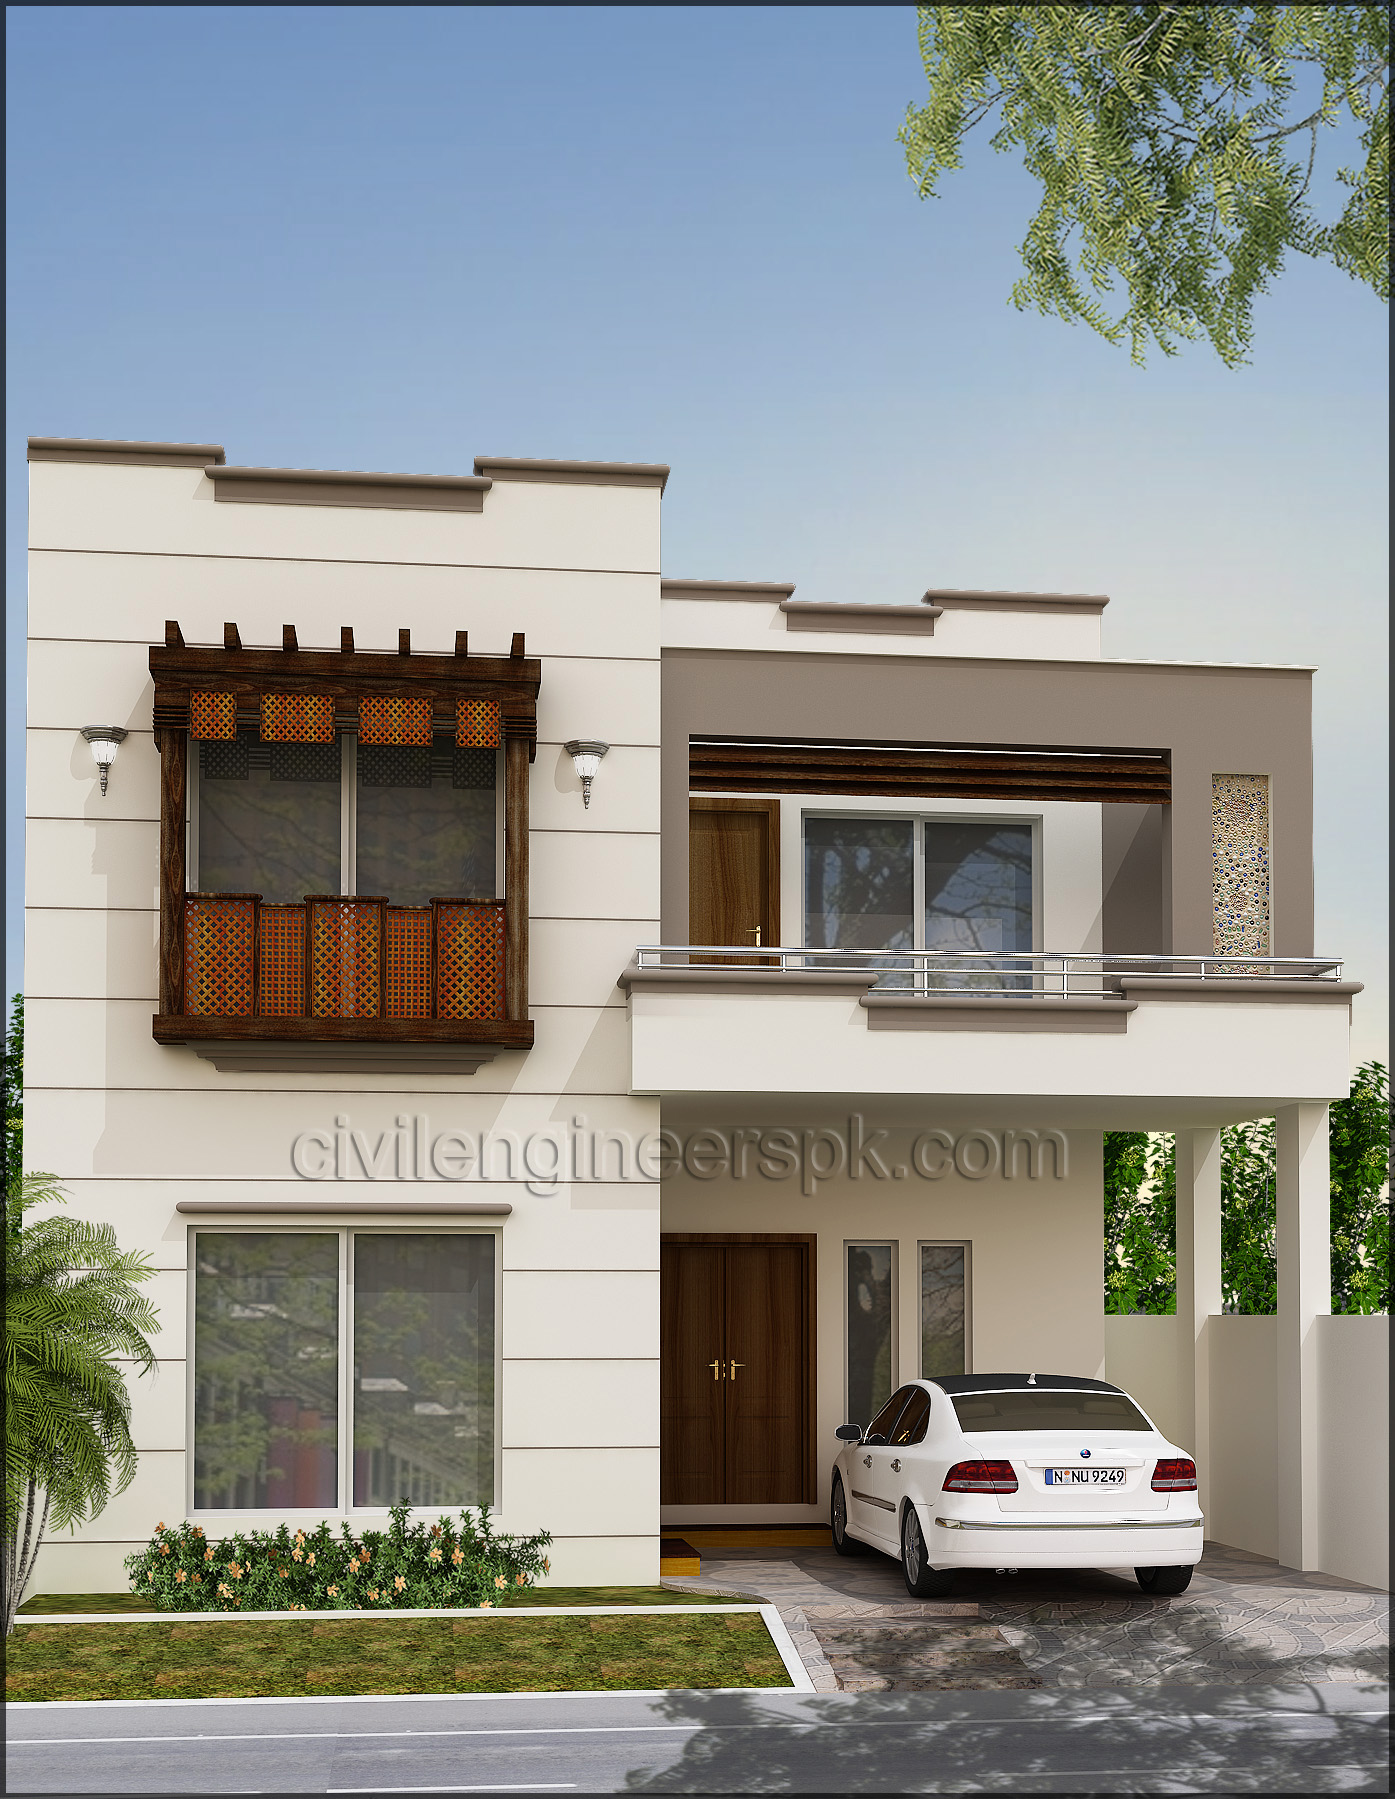 Front views civil engineers pk for Main front house design